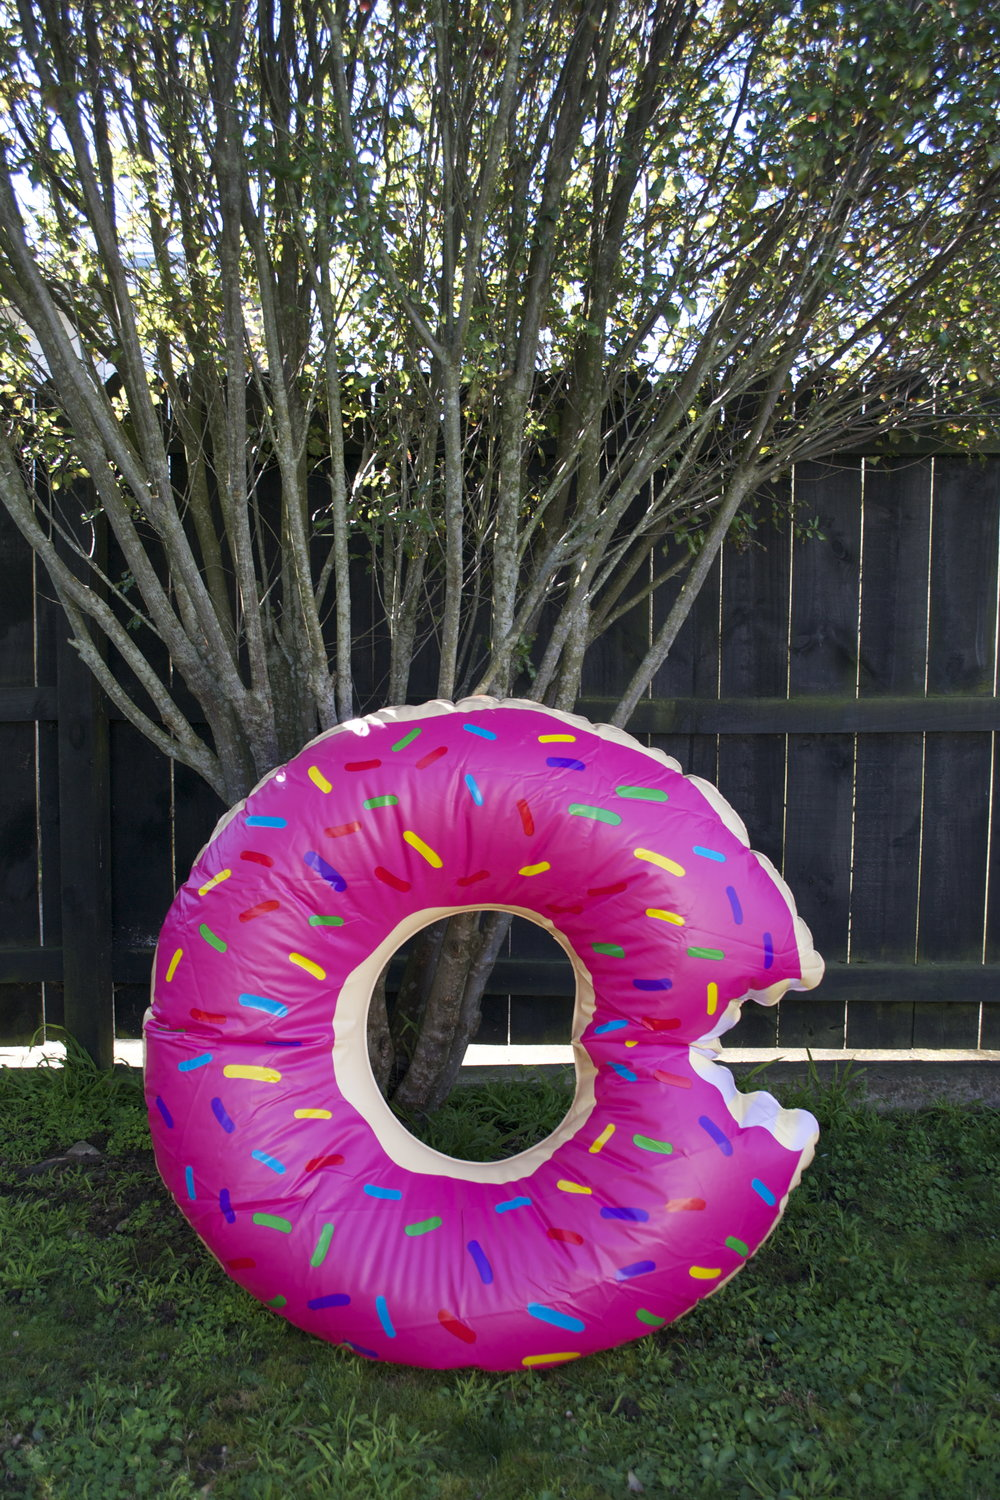 donut pool float x1 $8